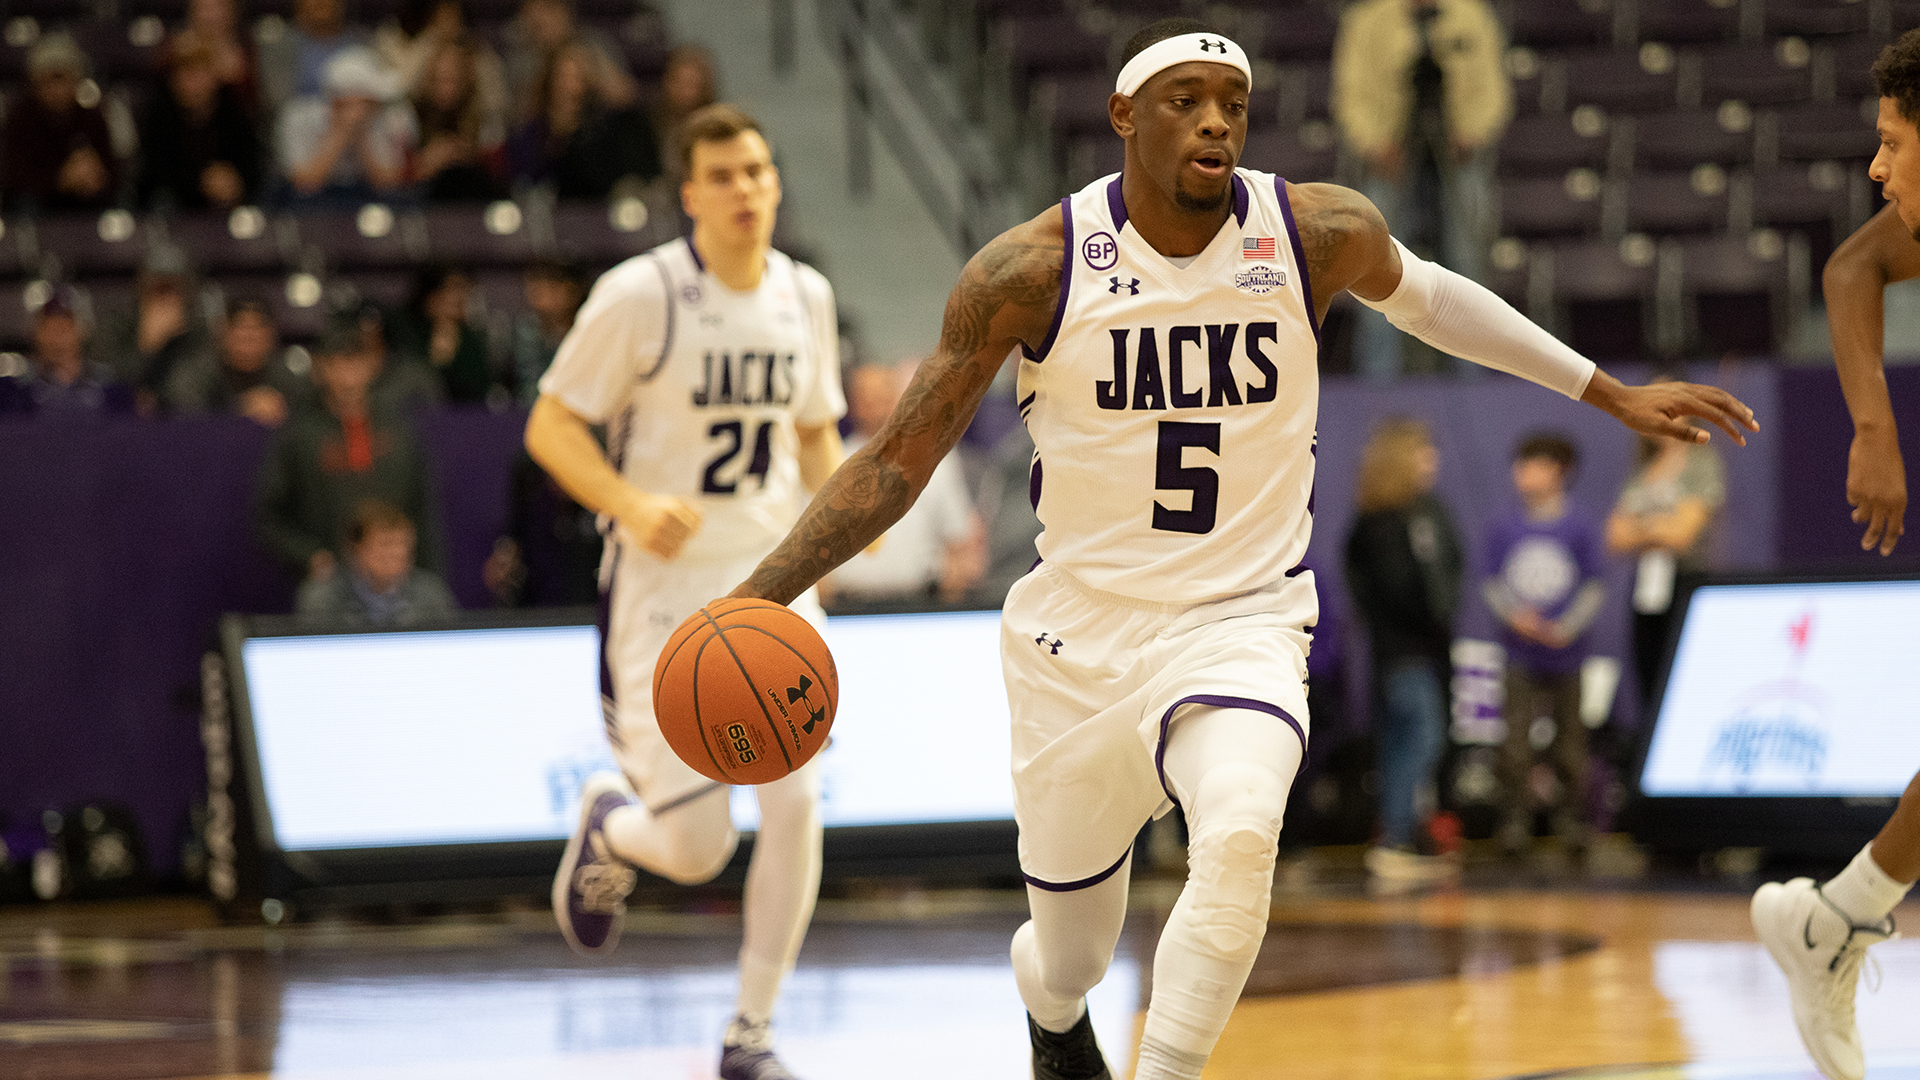 Jacks Hope to Continue Southland Winning Streak Wednesday against 1920x1080